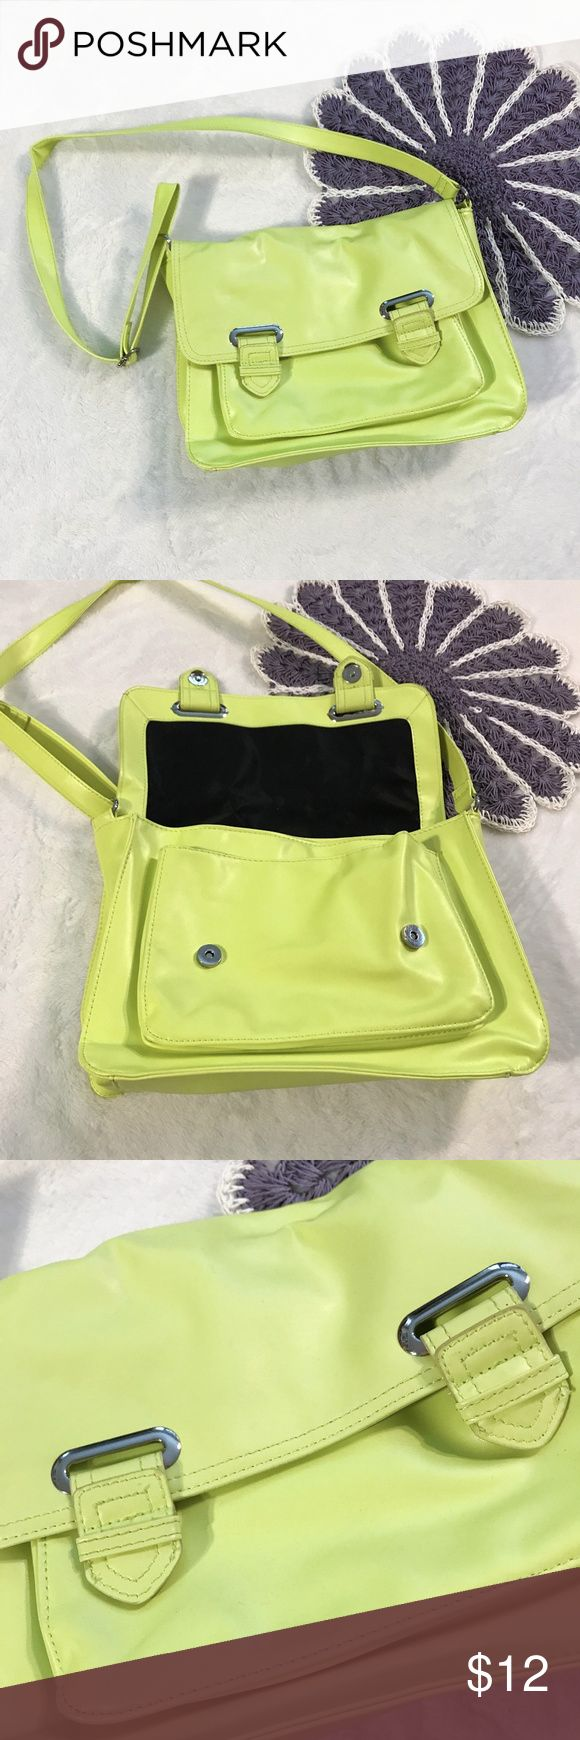 "Mondani New York Neon Yellow Messenger Bag This Mondani New York bag was sold at Target.  Bright and fun messenger style purse with magnetic closure and adjustable strap.  Bag has some signs of wear from use (see photos).  Size: 13"" x 9"" x 3"" Mondani Bags Shoulder Bags"